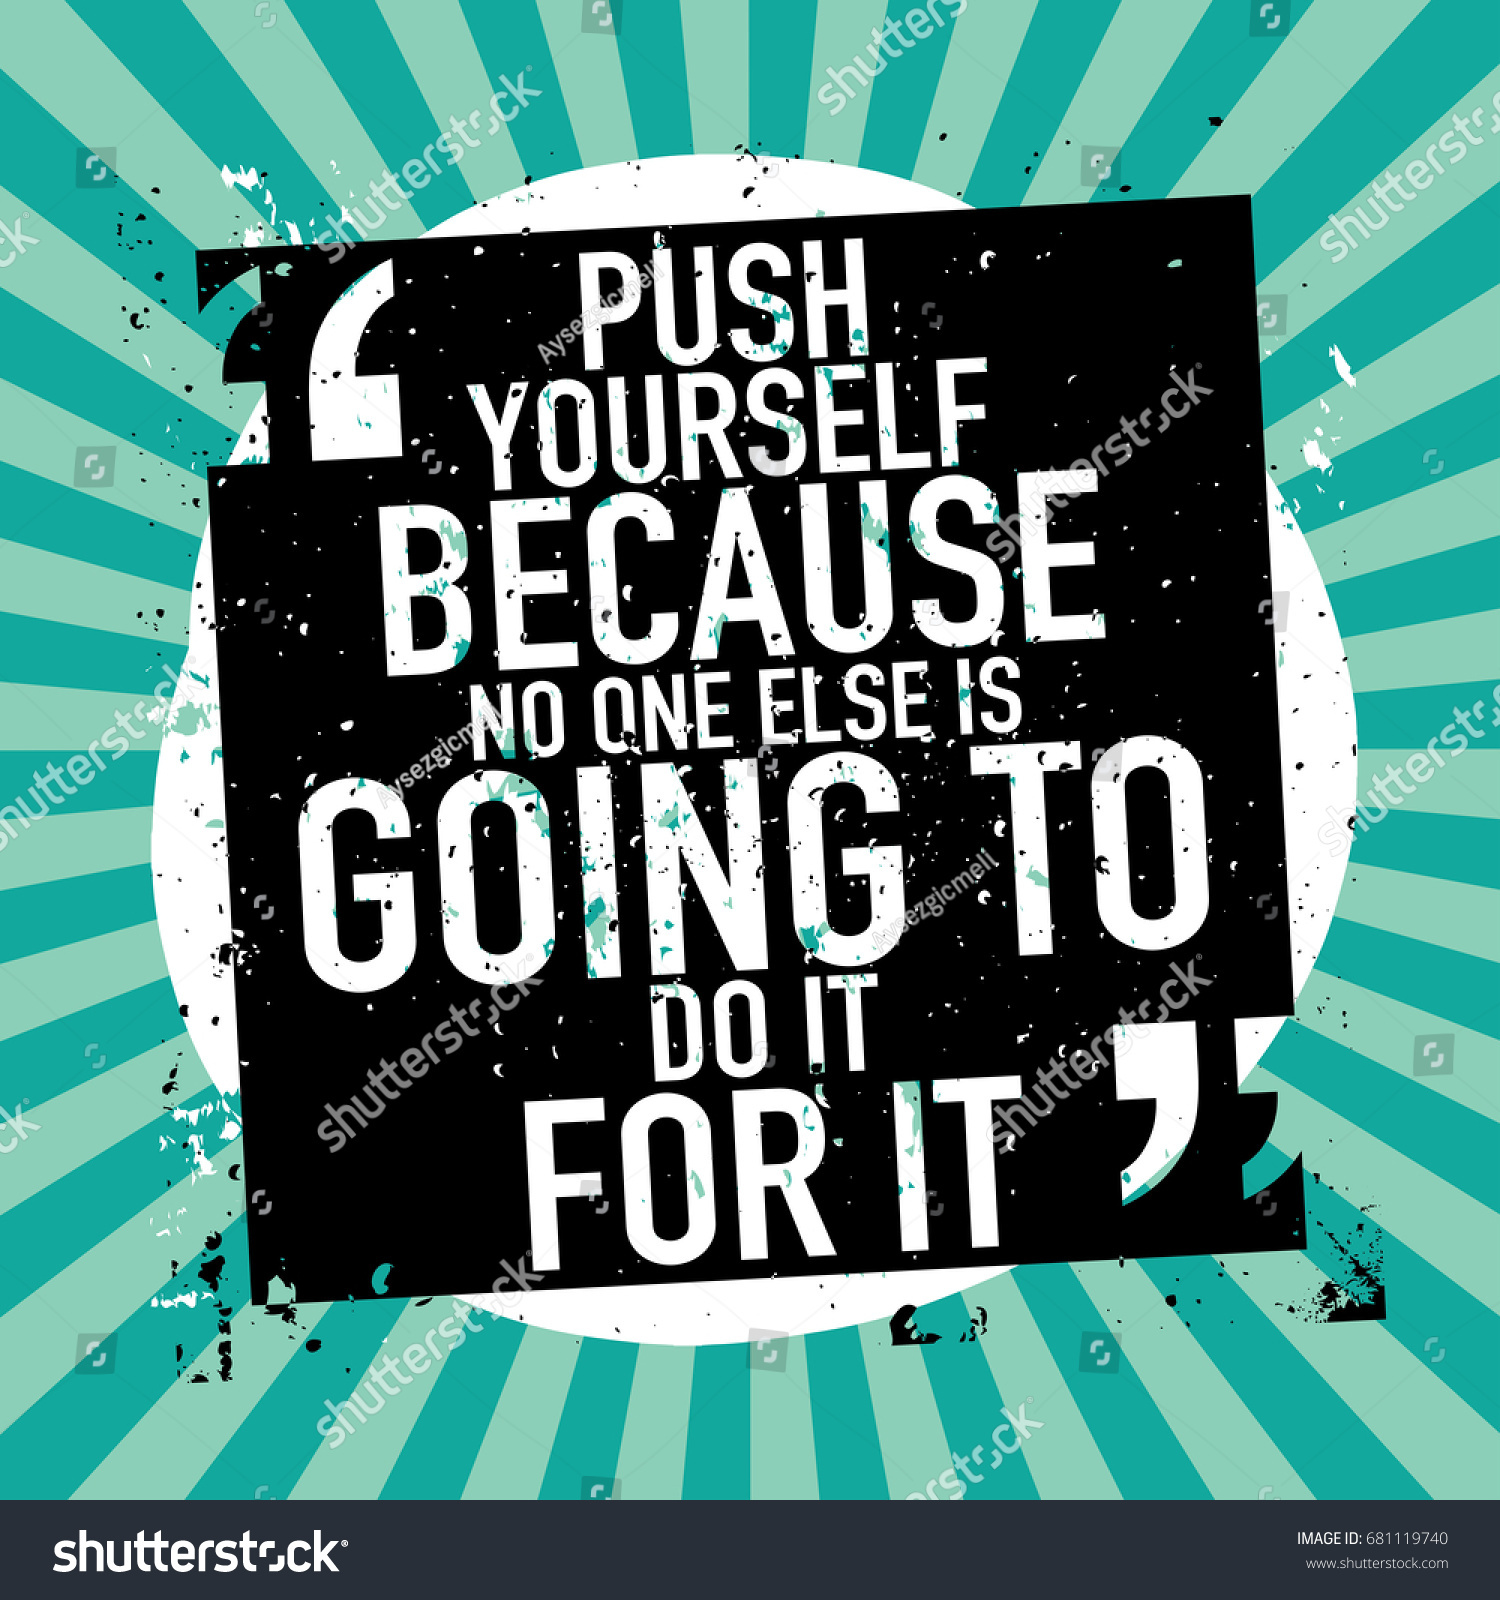 Inspirational motivational quote poster print design stock vector inspirational motivational quote poster print design push yourself because no one else is going solutioingenieria Image collections